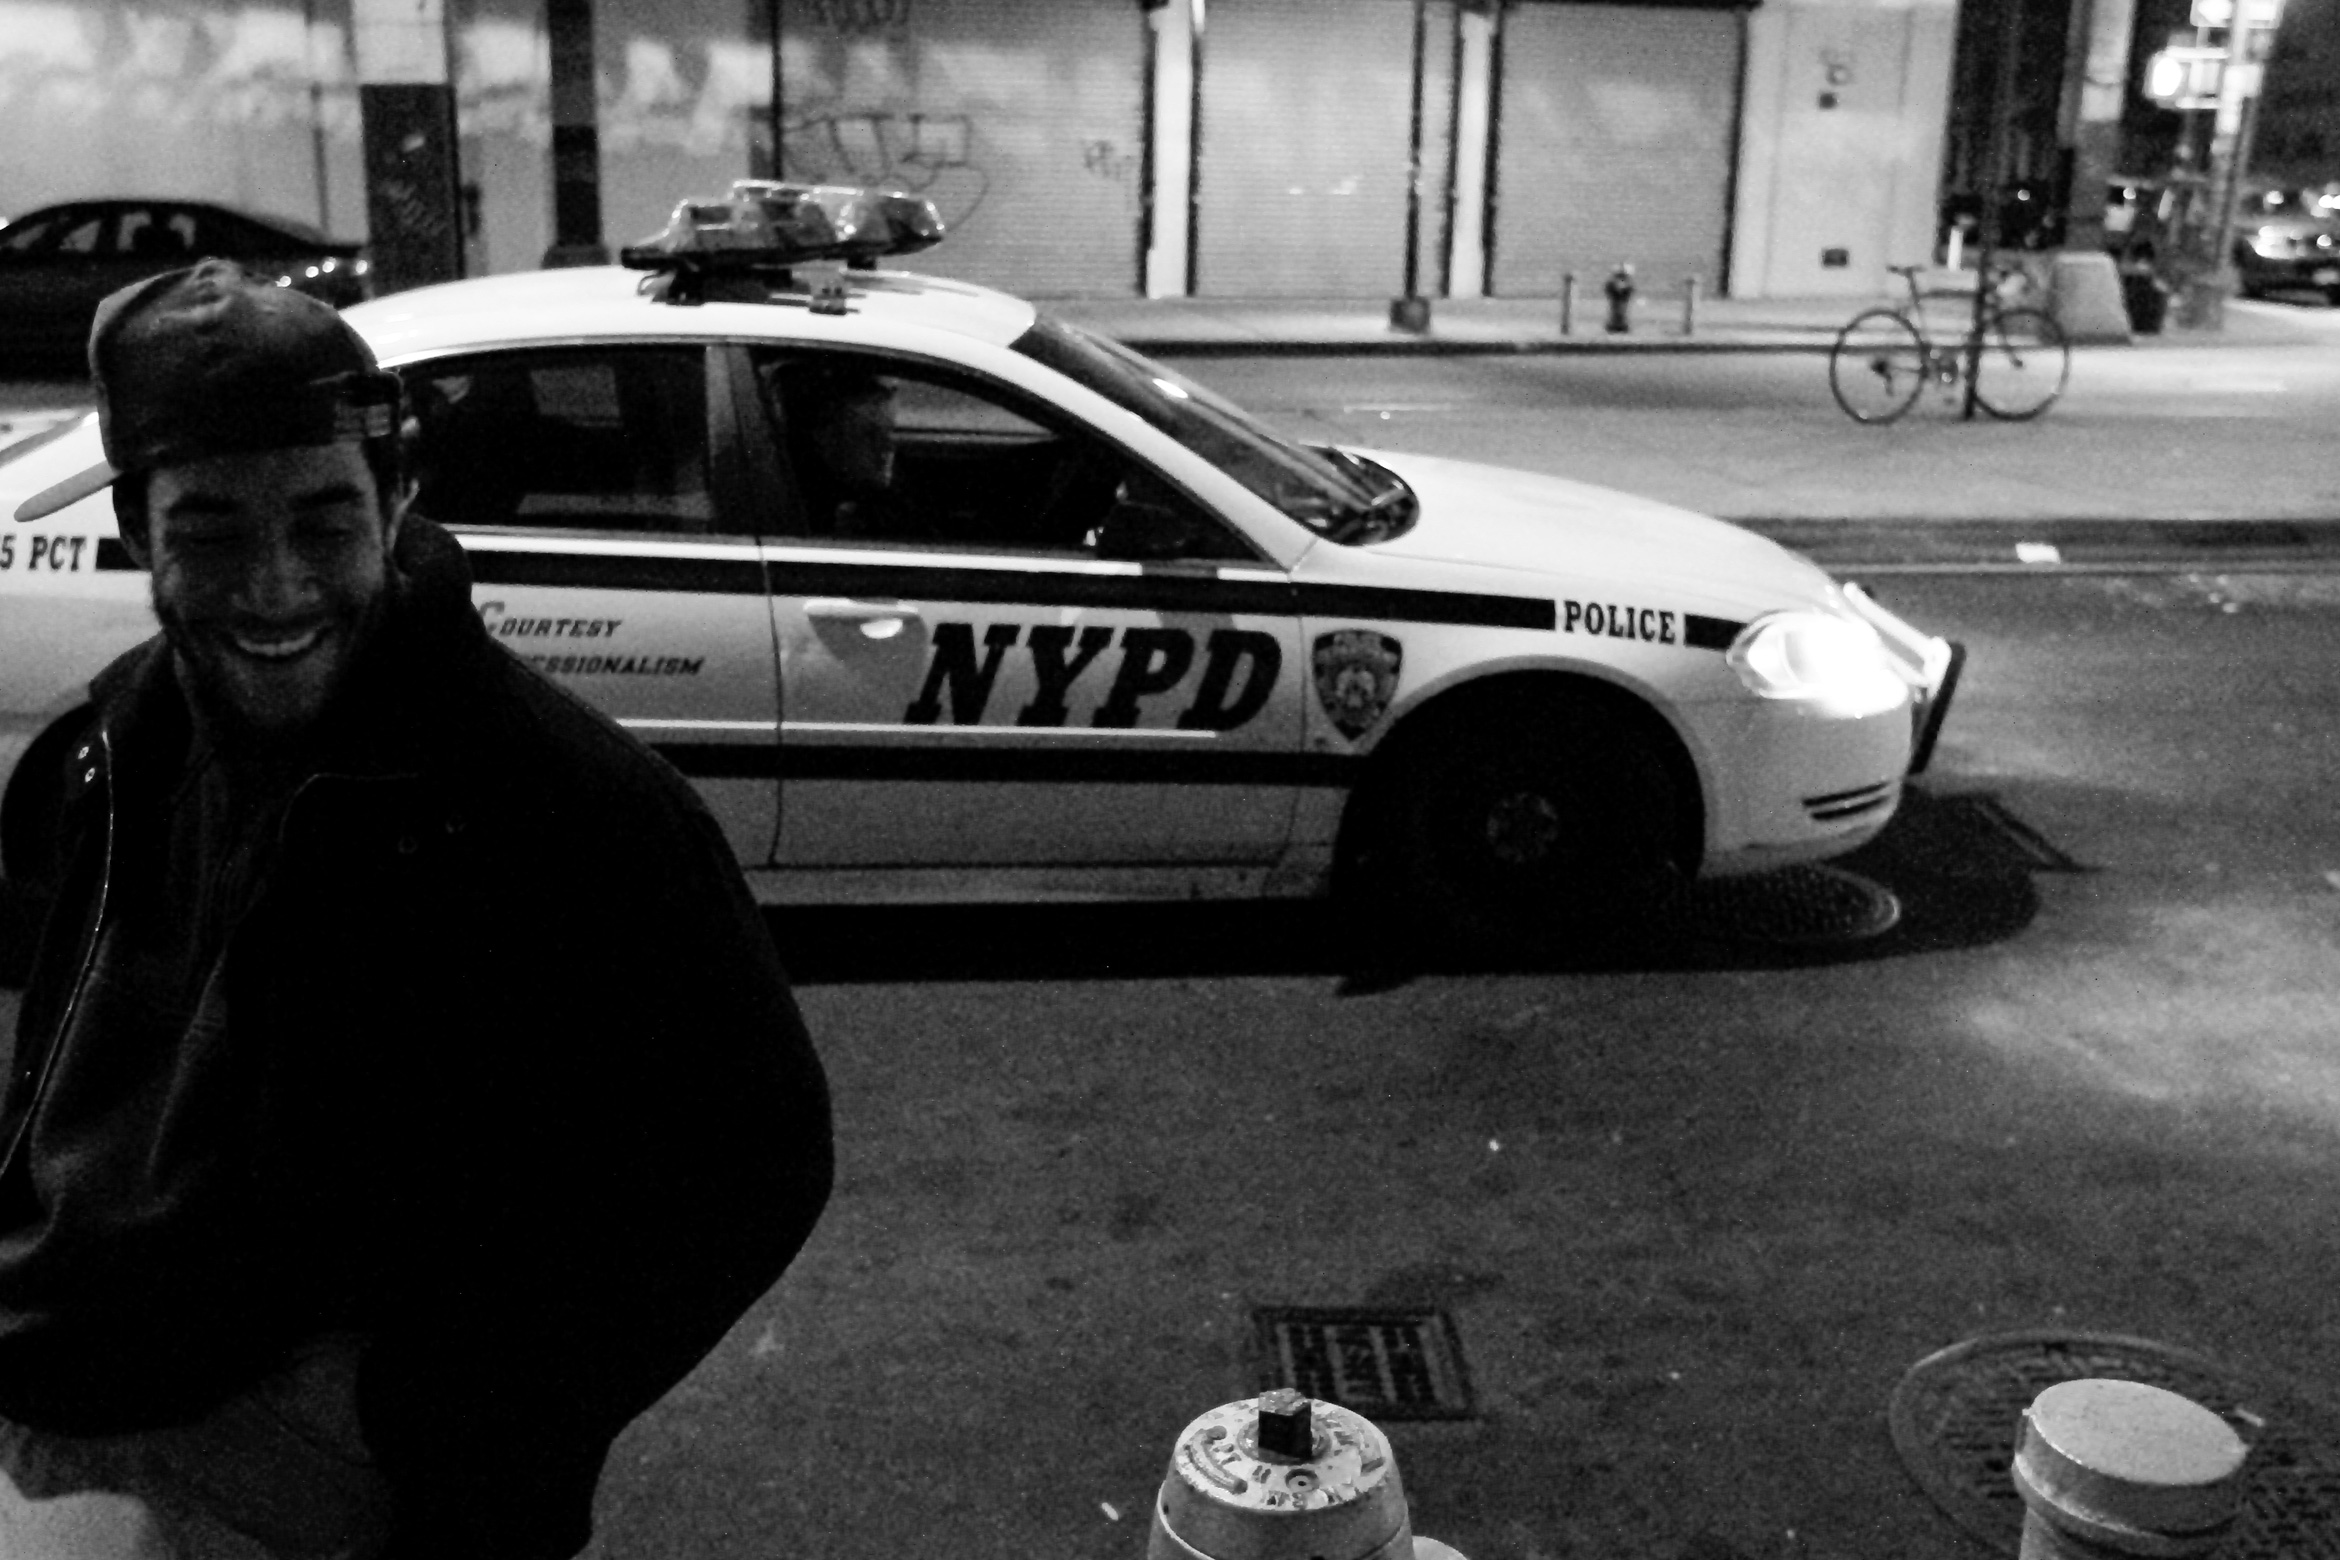 nypd-new-york-police